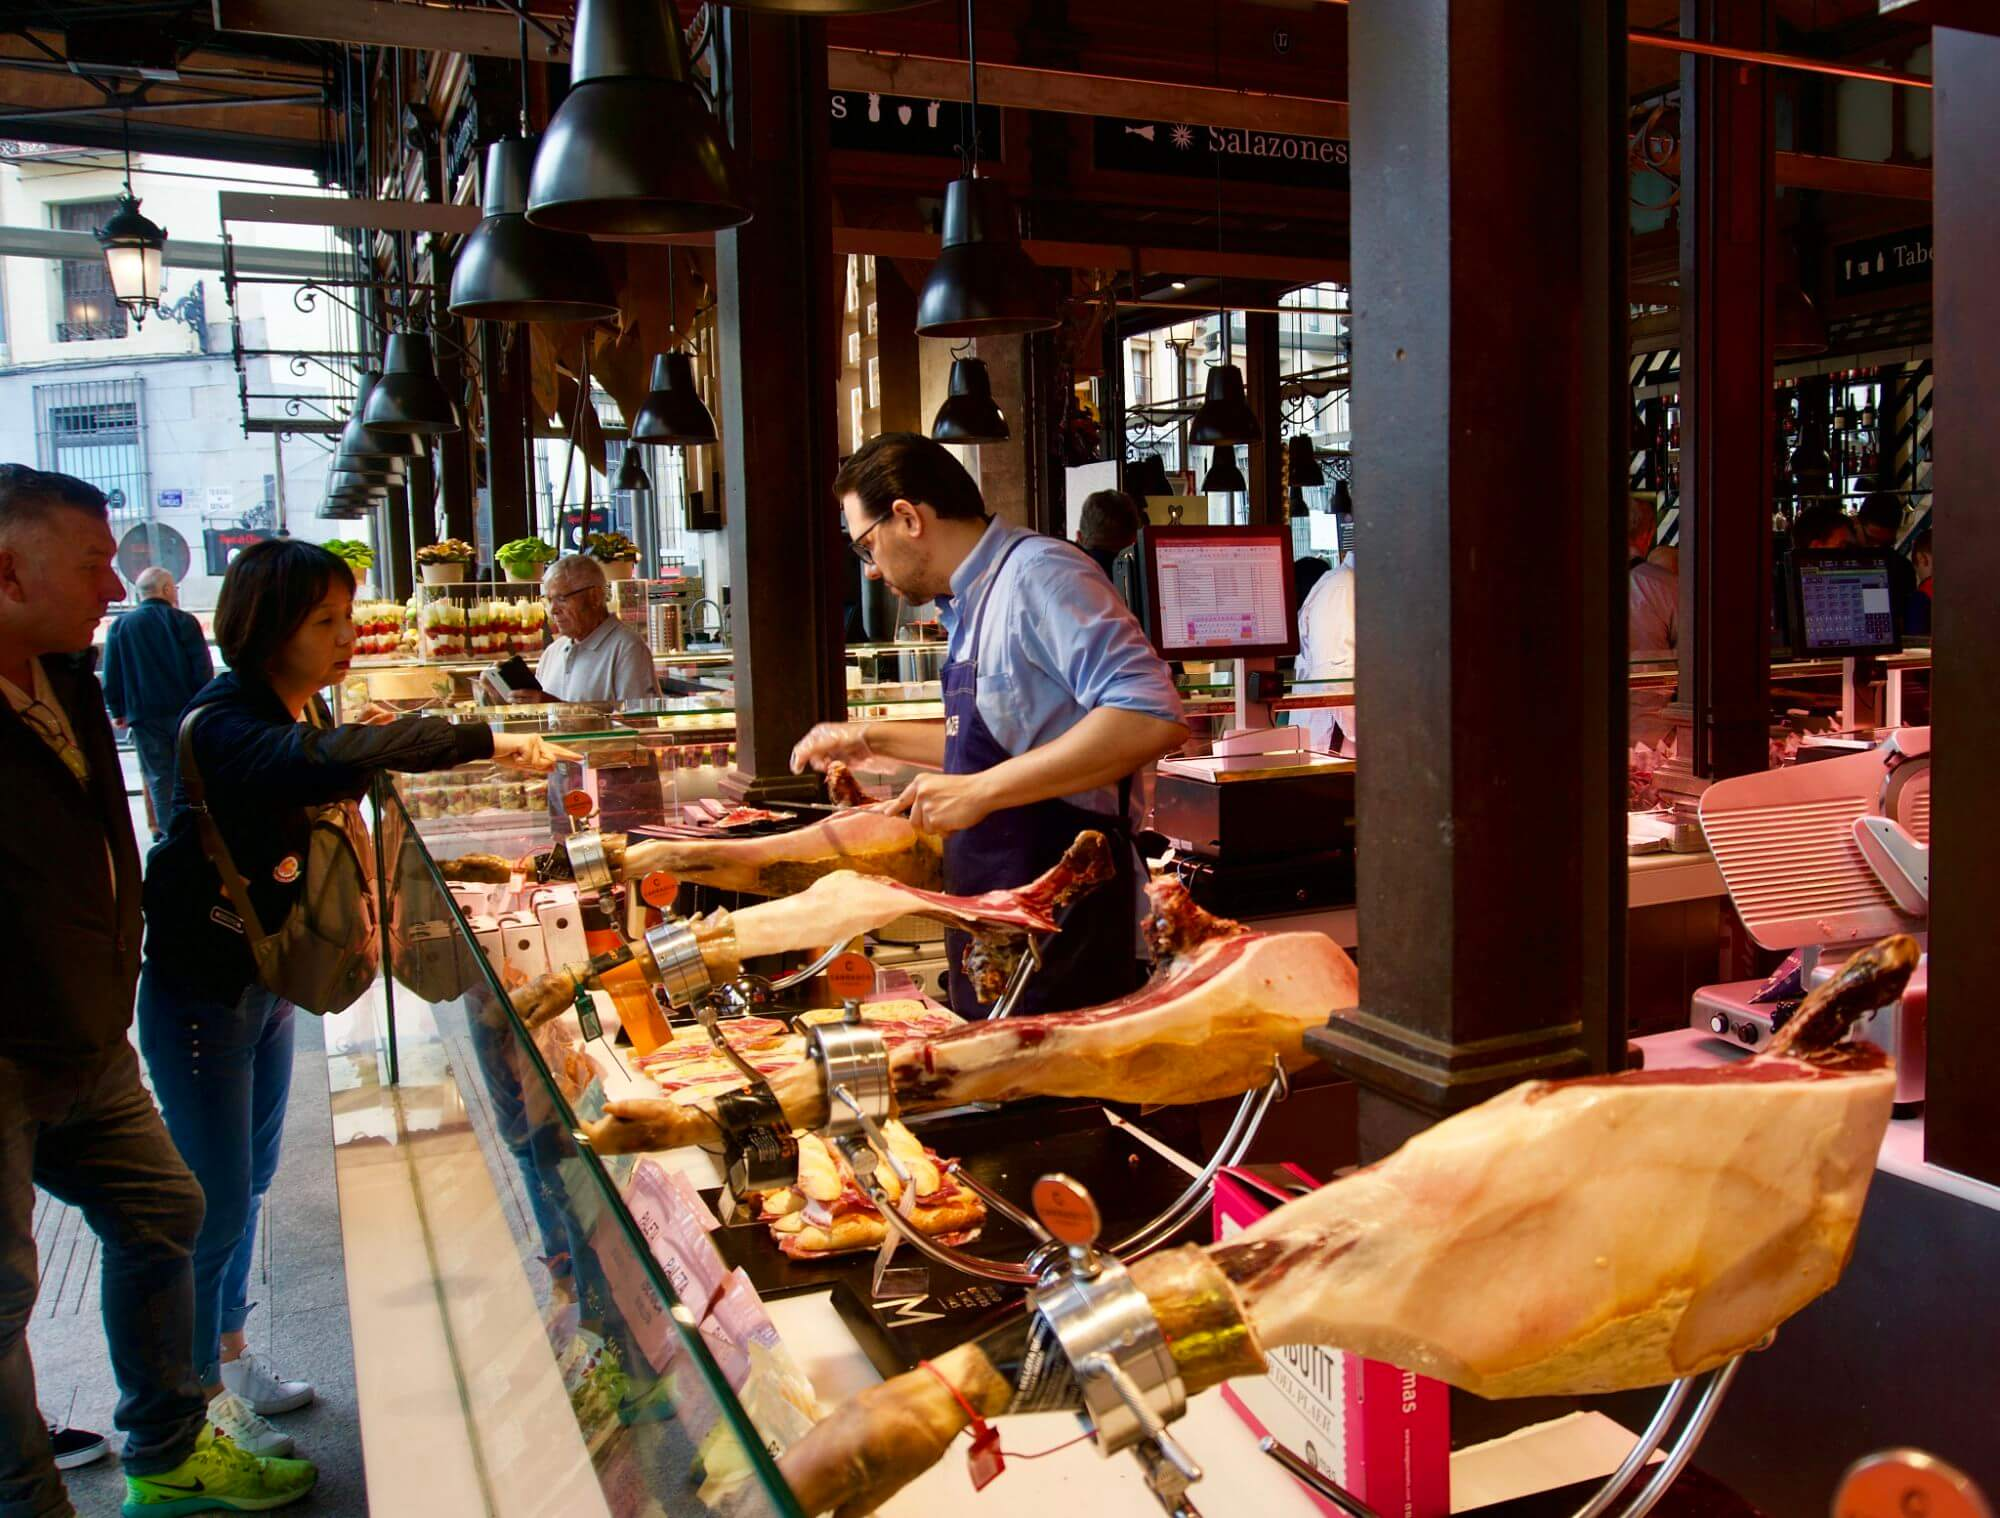 Jamon vendor in the Mercado de San Miguel in Madrid Spain